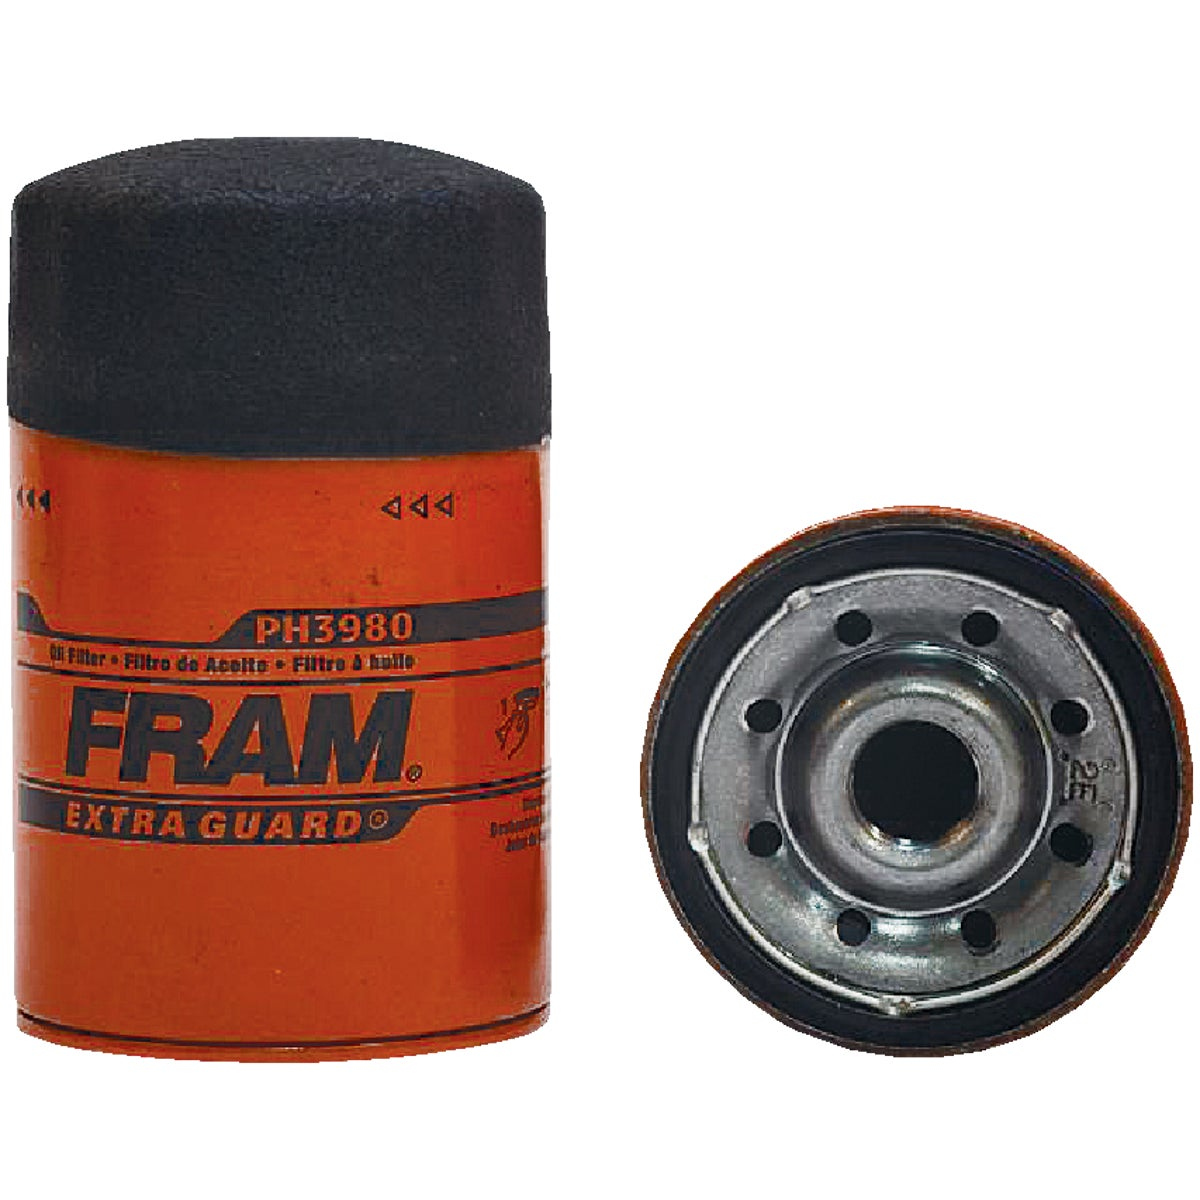 OIL FILTER - PH3980 by Fram Group